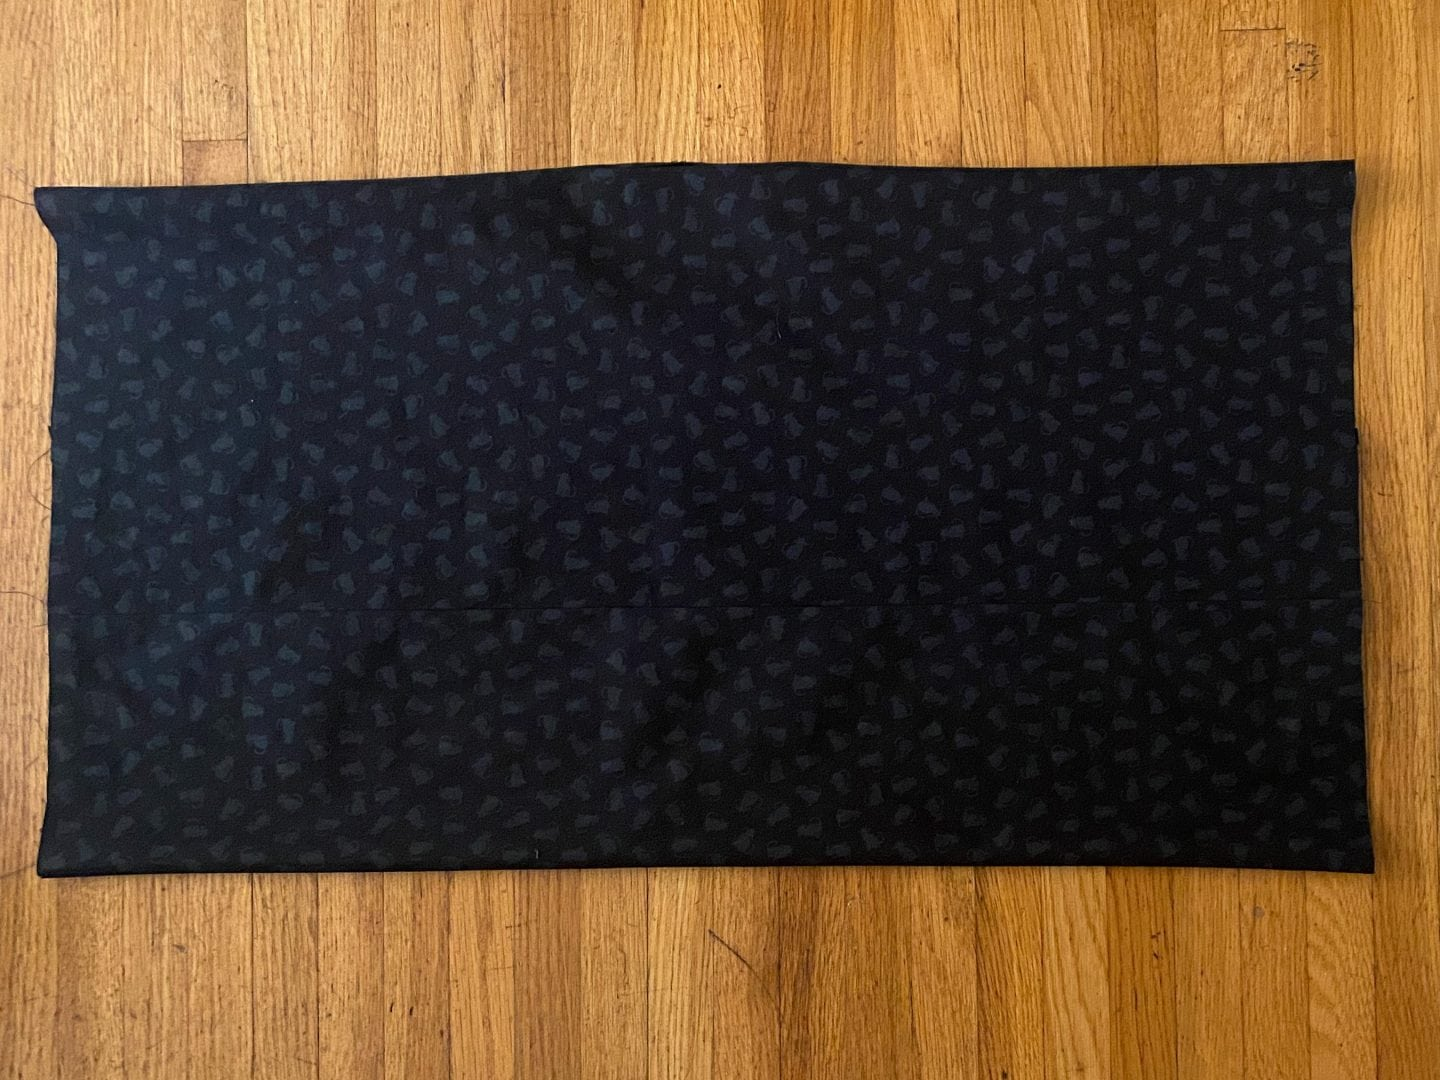 Image of the completed body of the diy yoga bolster